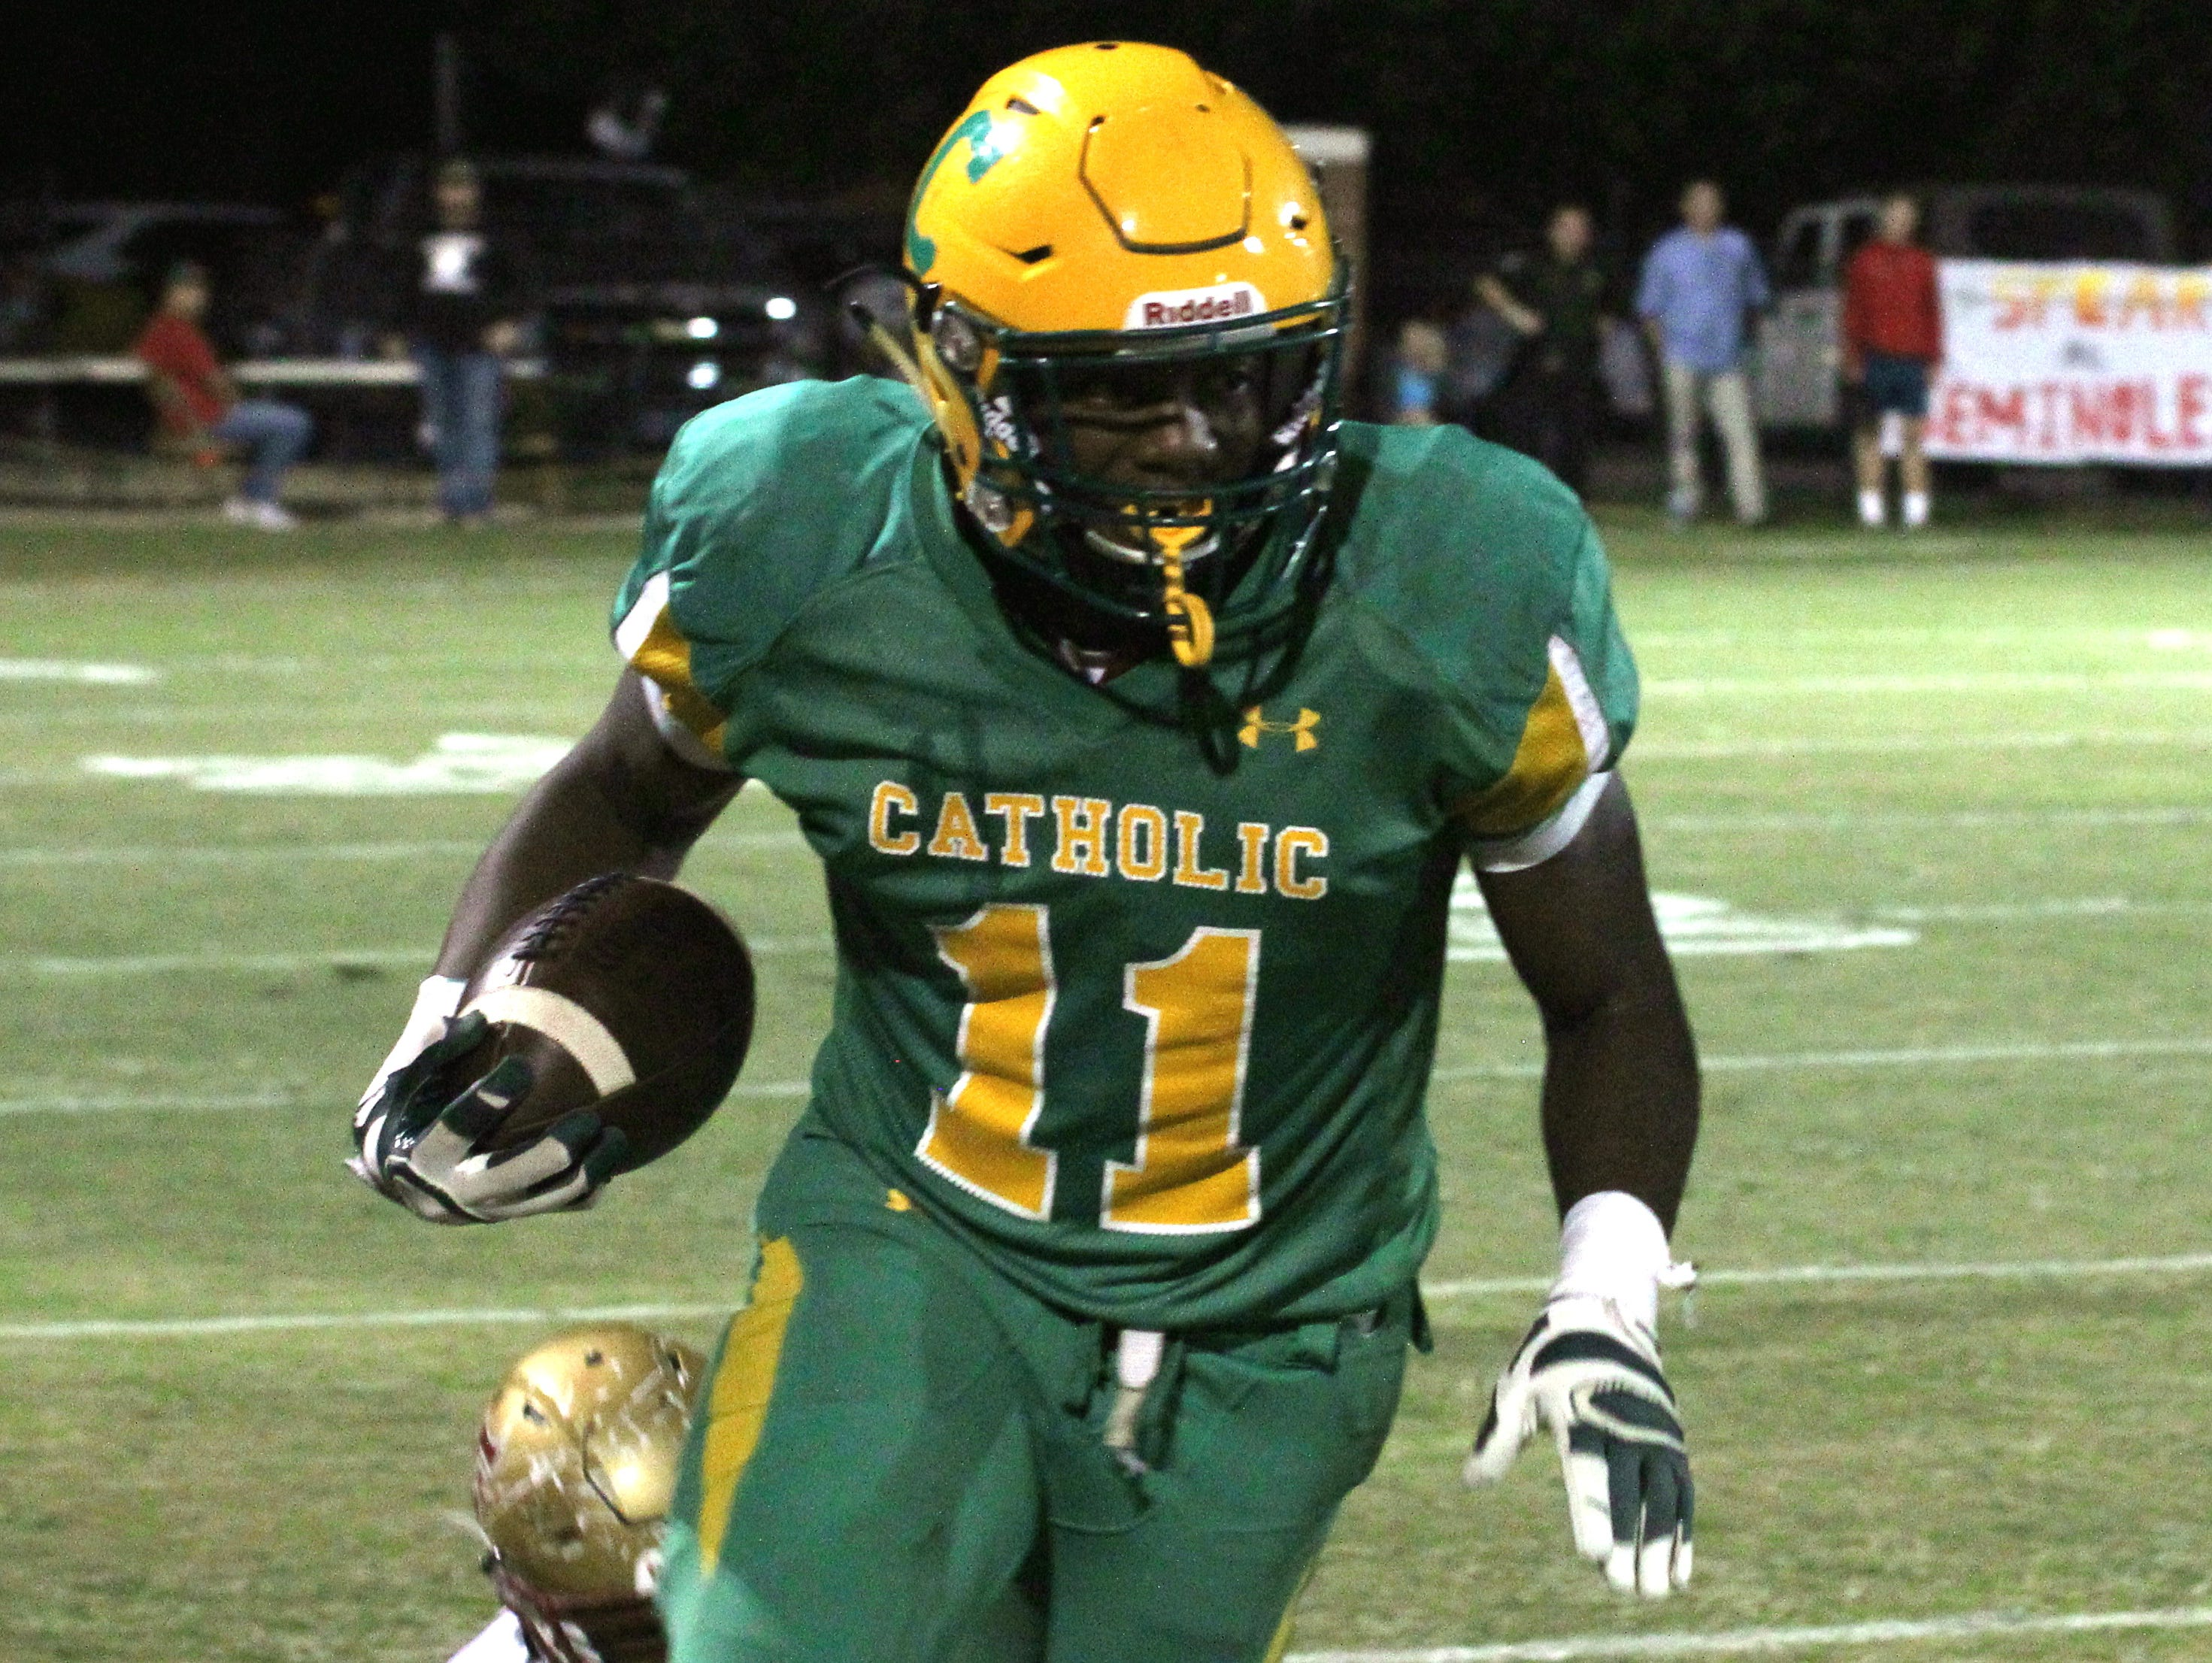 Catholic's Kerrick Teamer returns a punt in the first half.